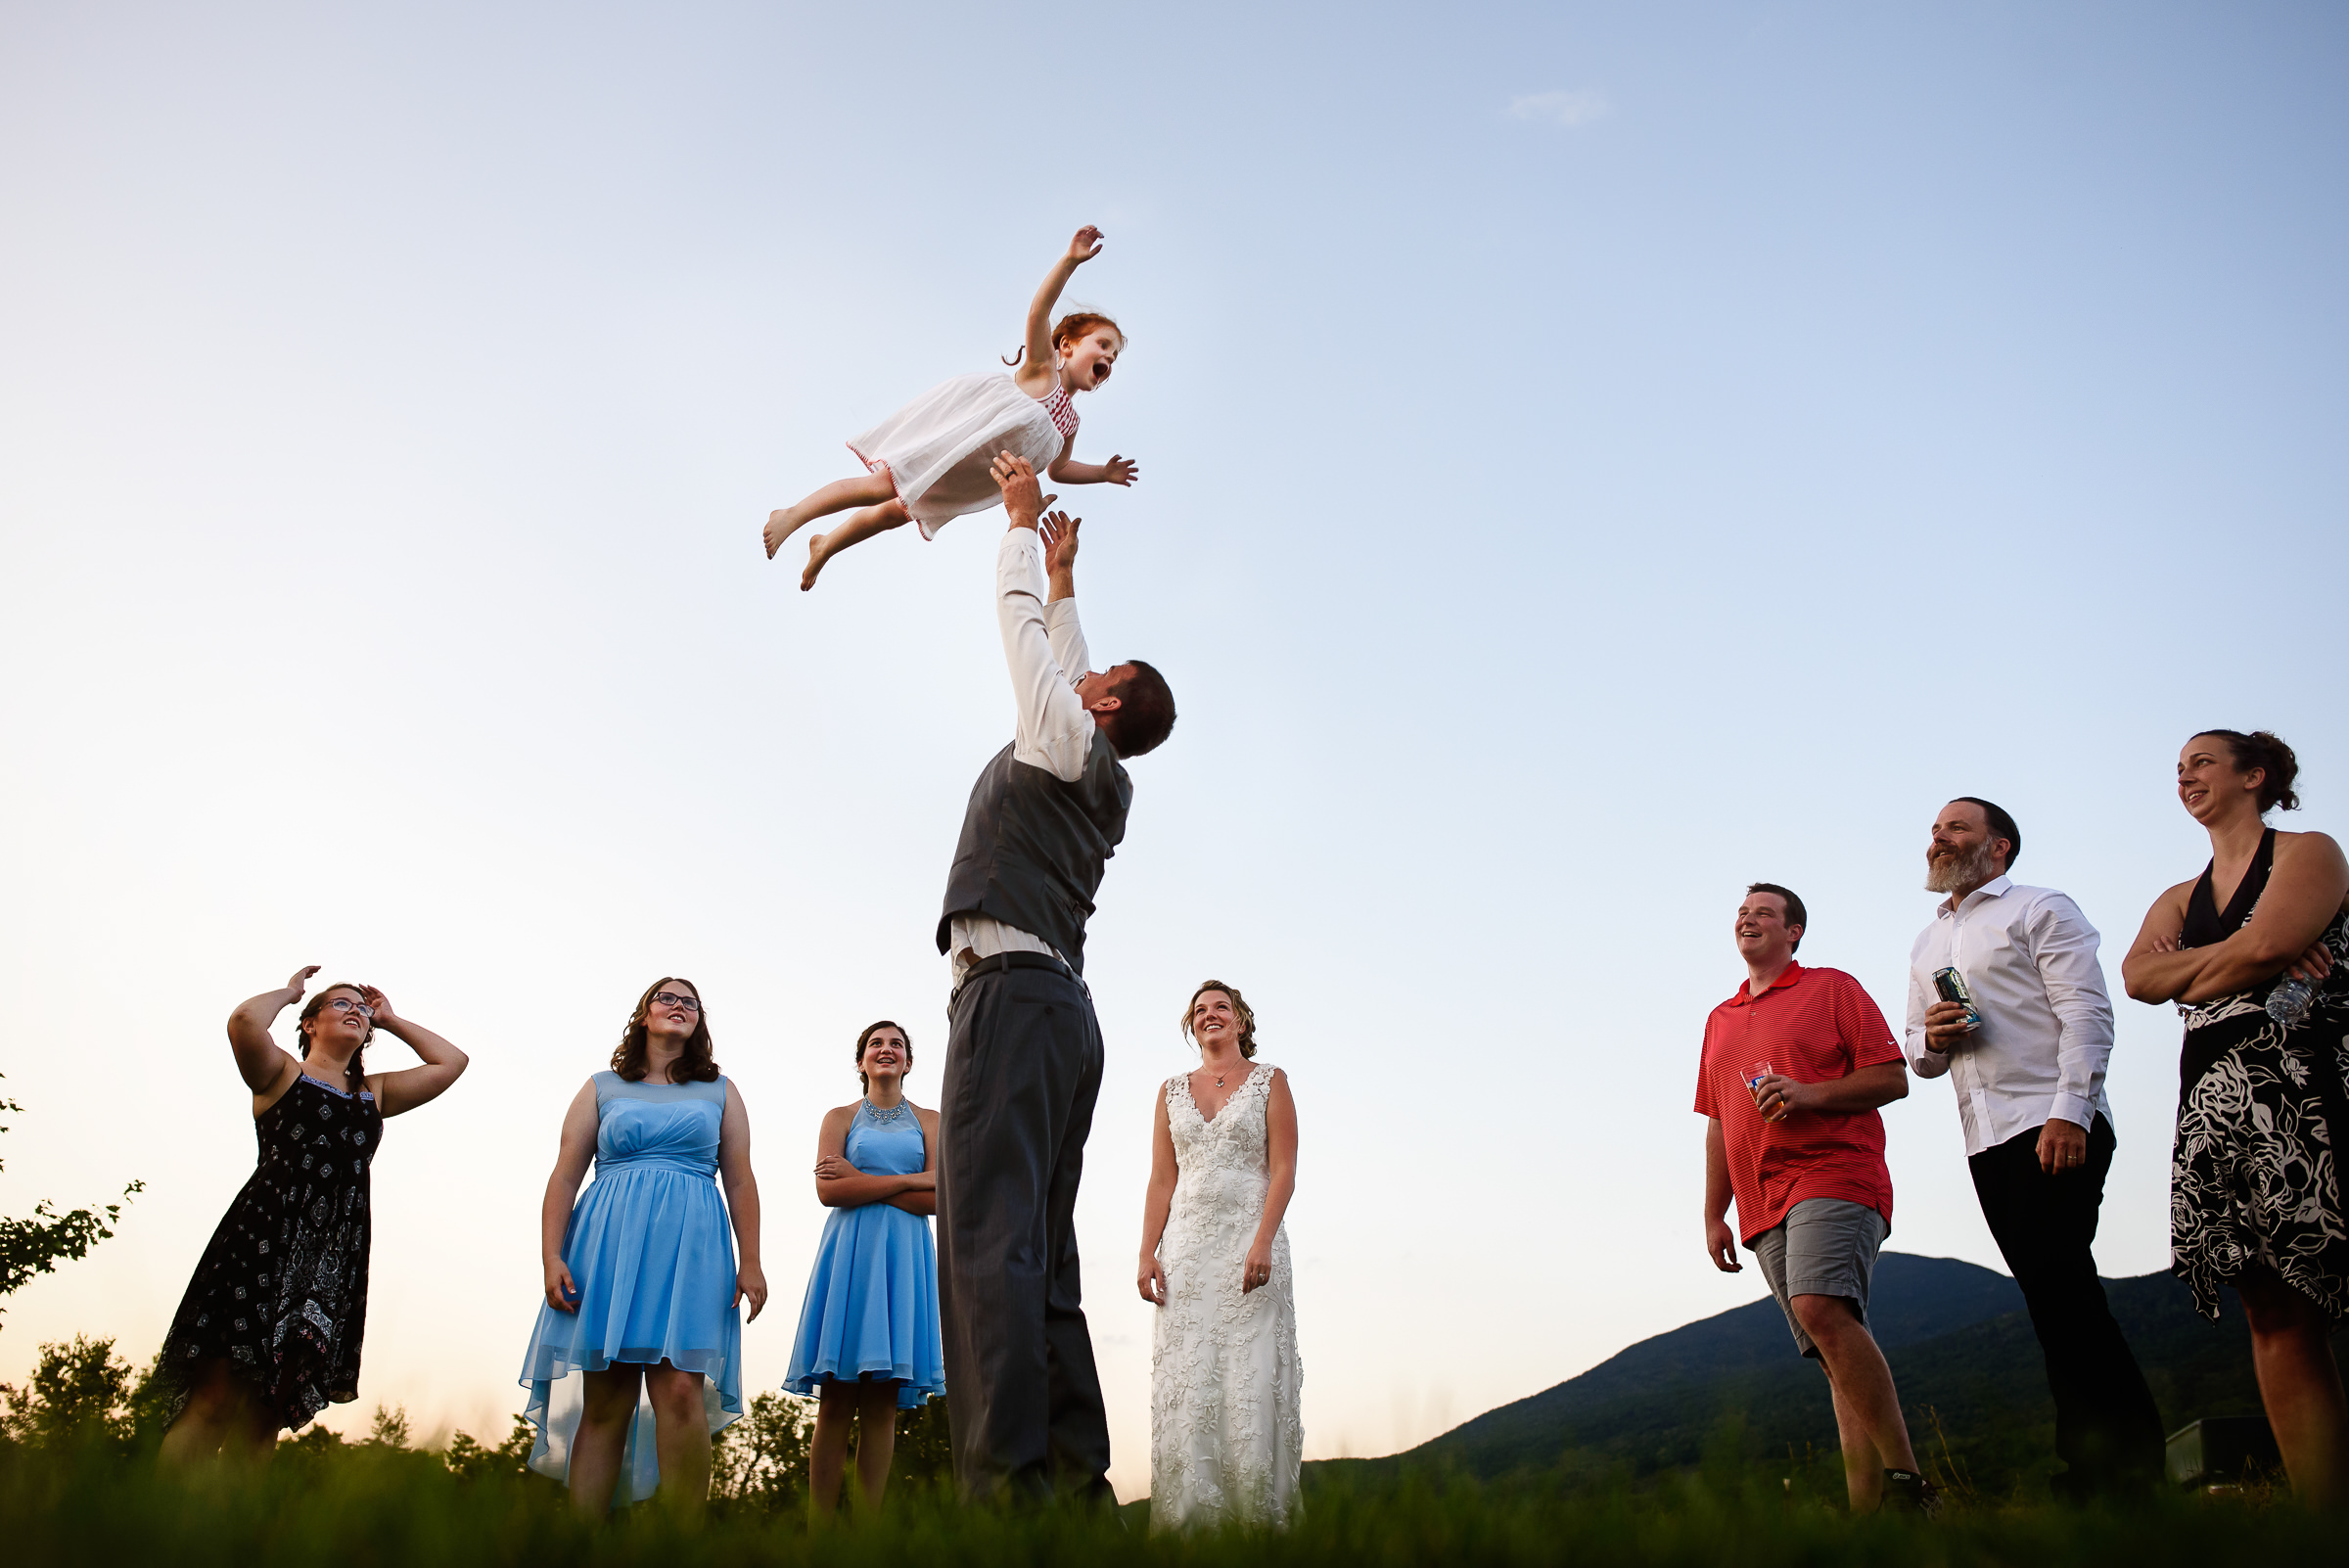 groom throwing the flower girl in the sky for fun- photo by Hannah Photography